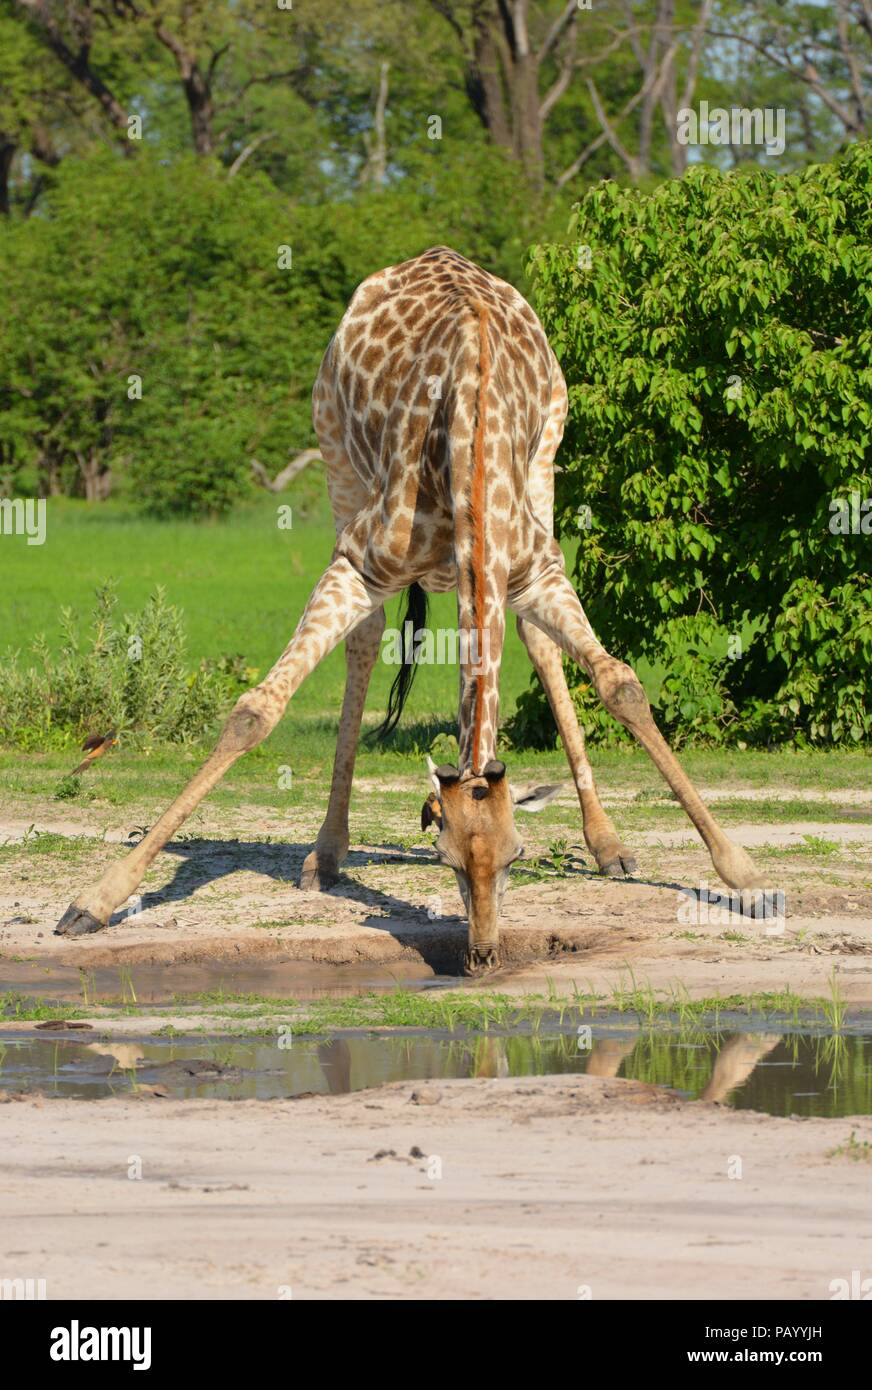 Giraffe beding down to drink water in the african bush - Stock Image